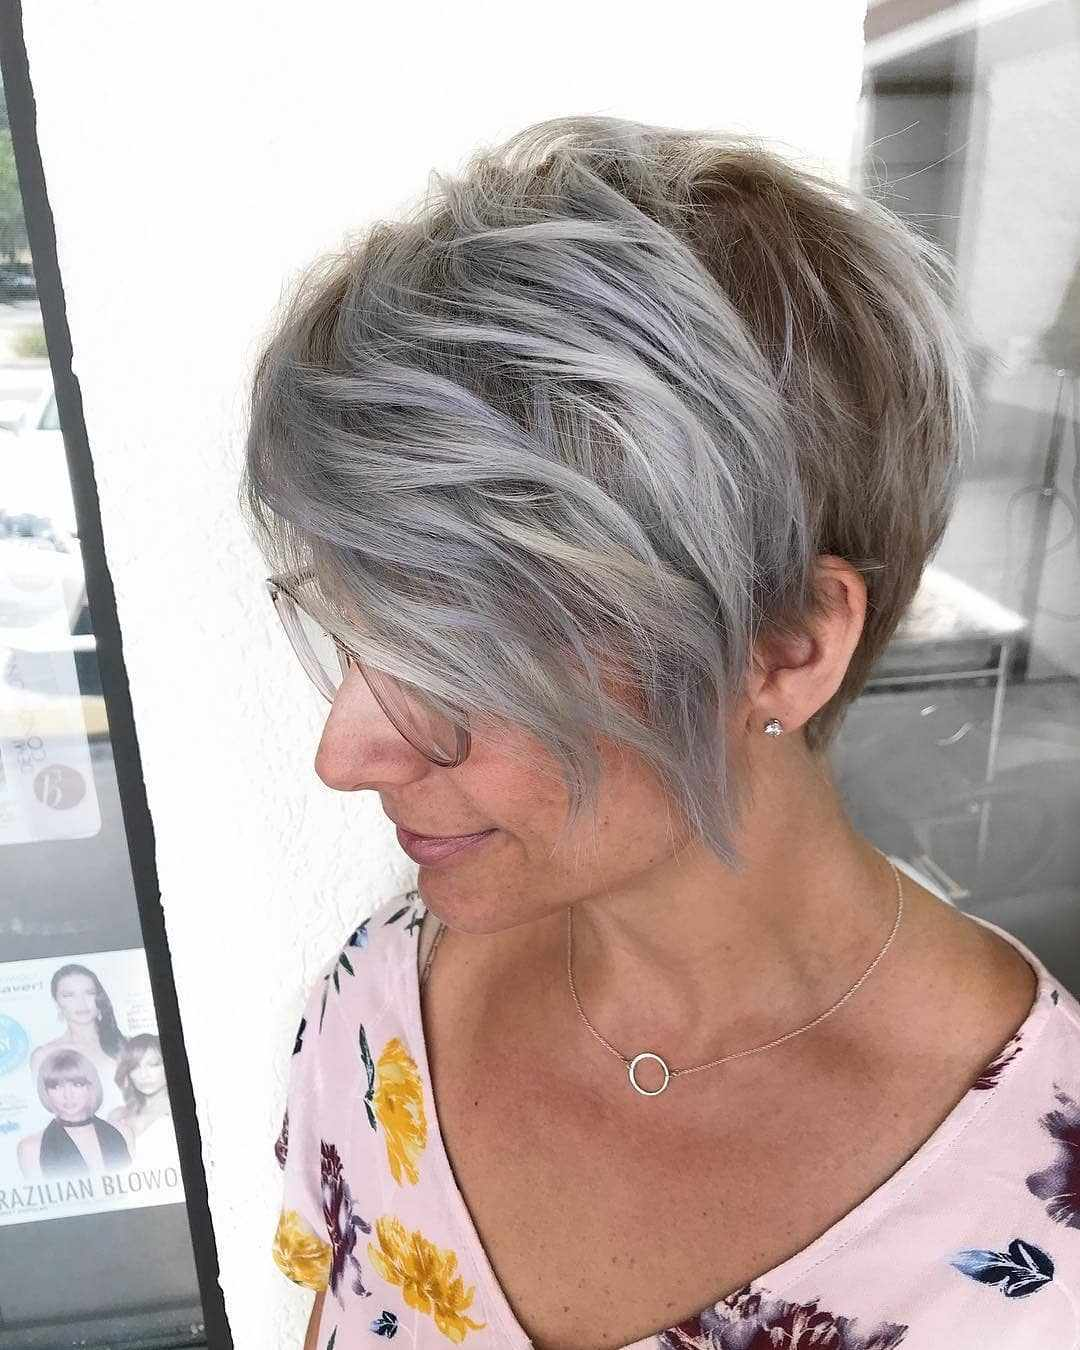 25 Short Hairstyles to Flaunt This Year 2019 with Swag - Haircuts &  Hairstyles 2021